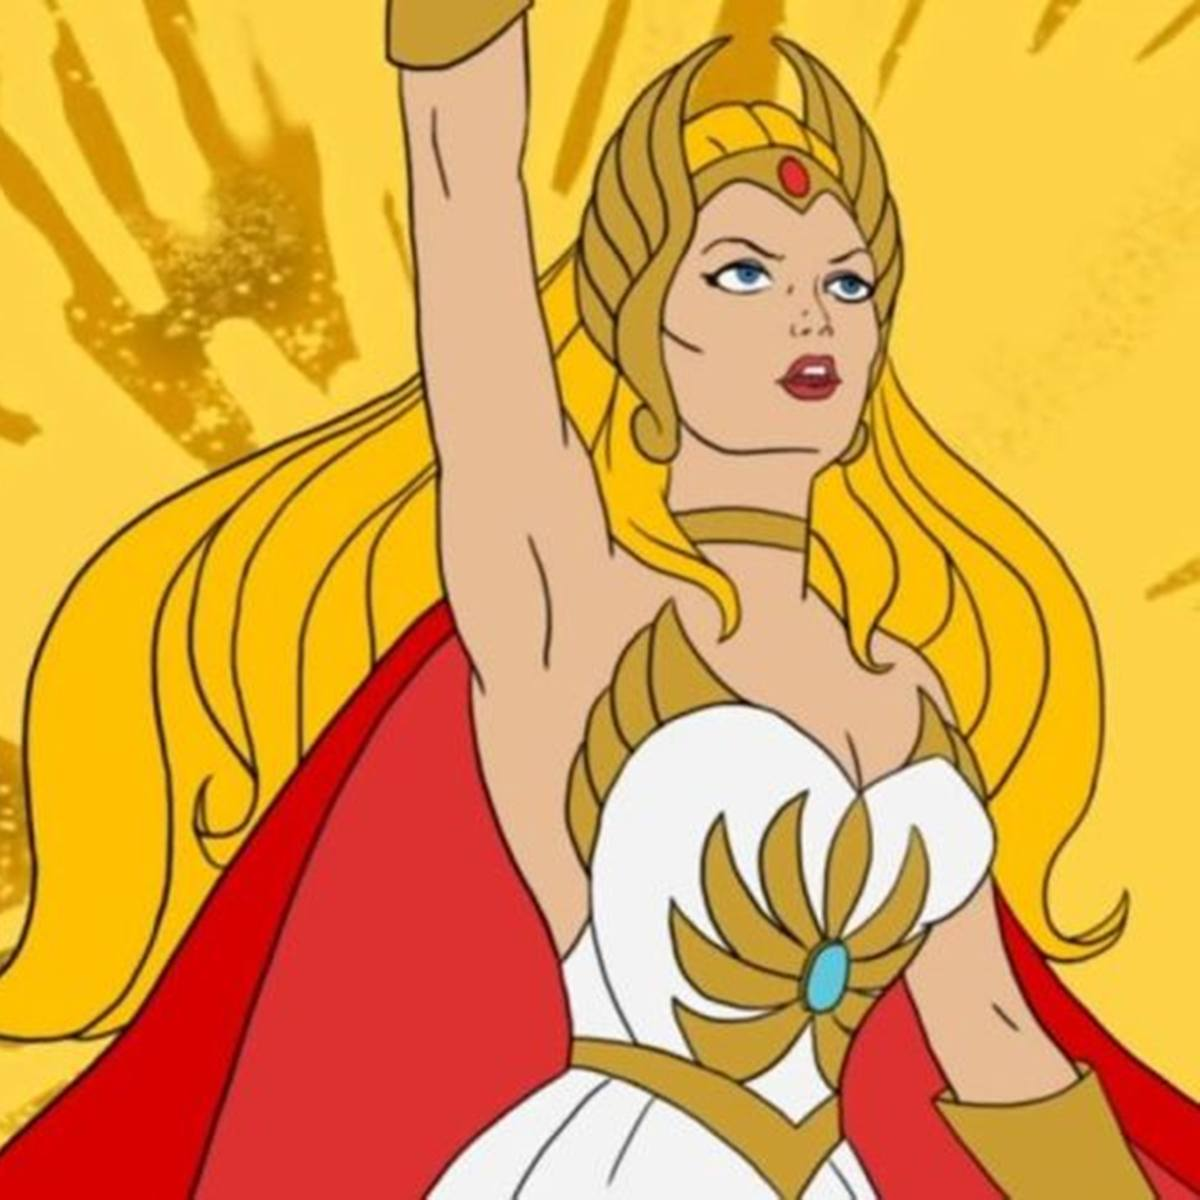 SHE RA 15 Facts About 80s Cartoons That Will Ruin Your Childhood